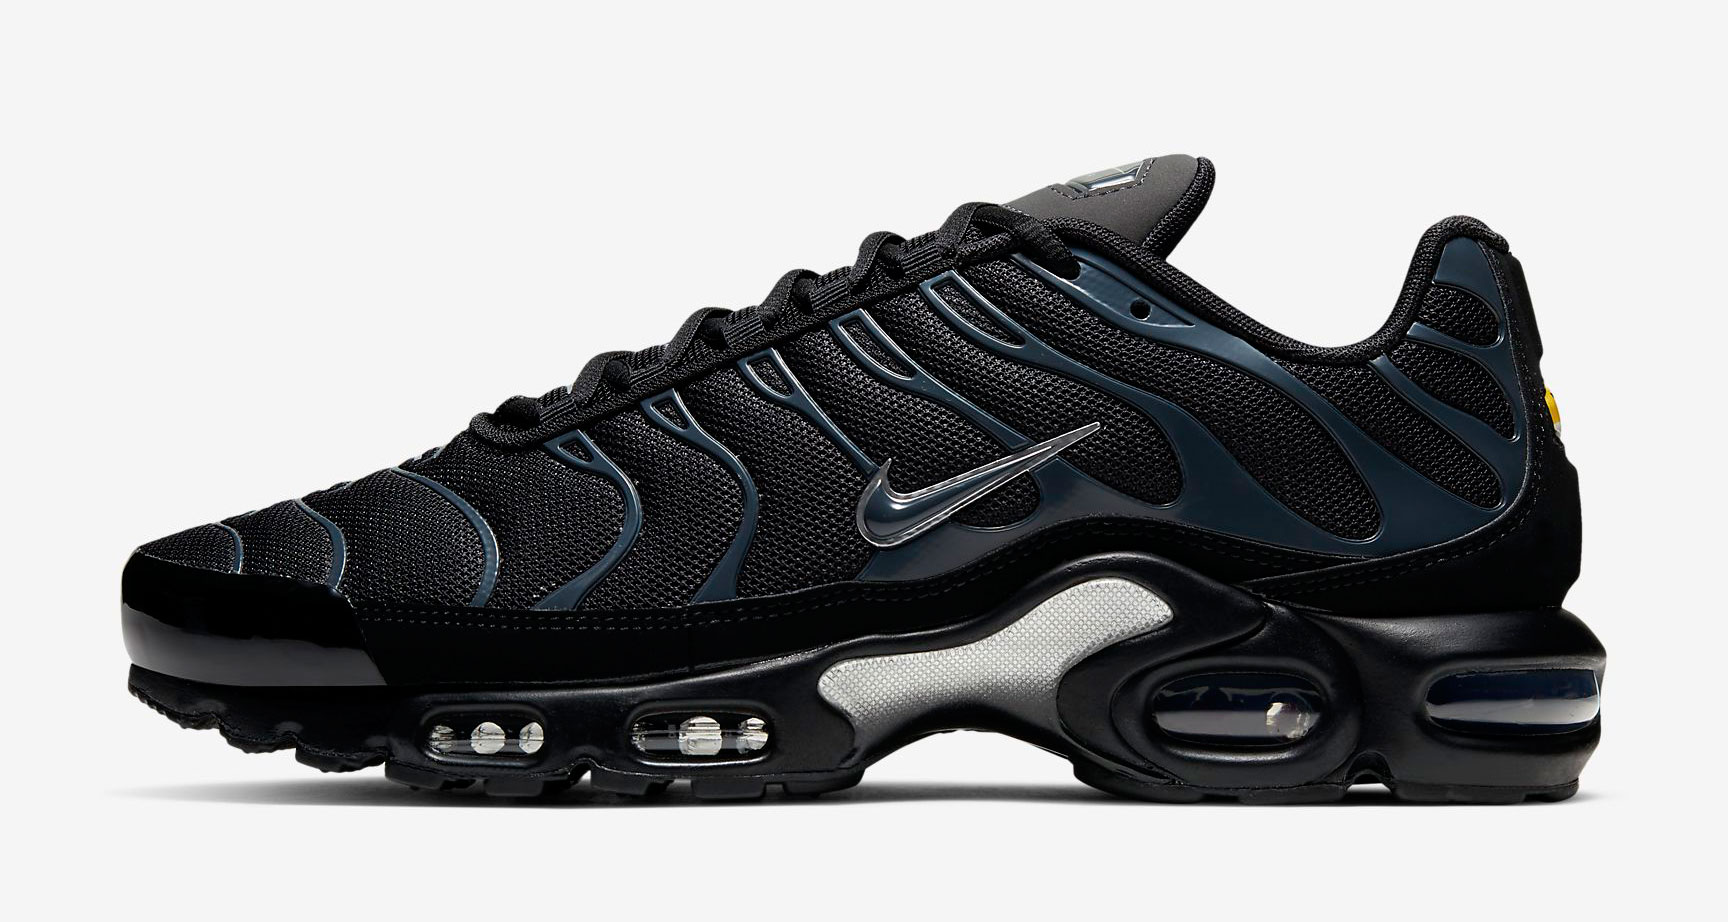 nike-air-max-plus-black-metallic-silver-release-date